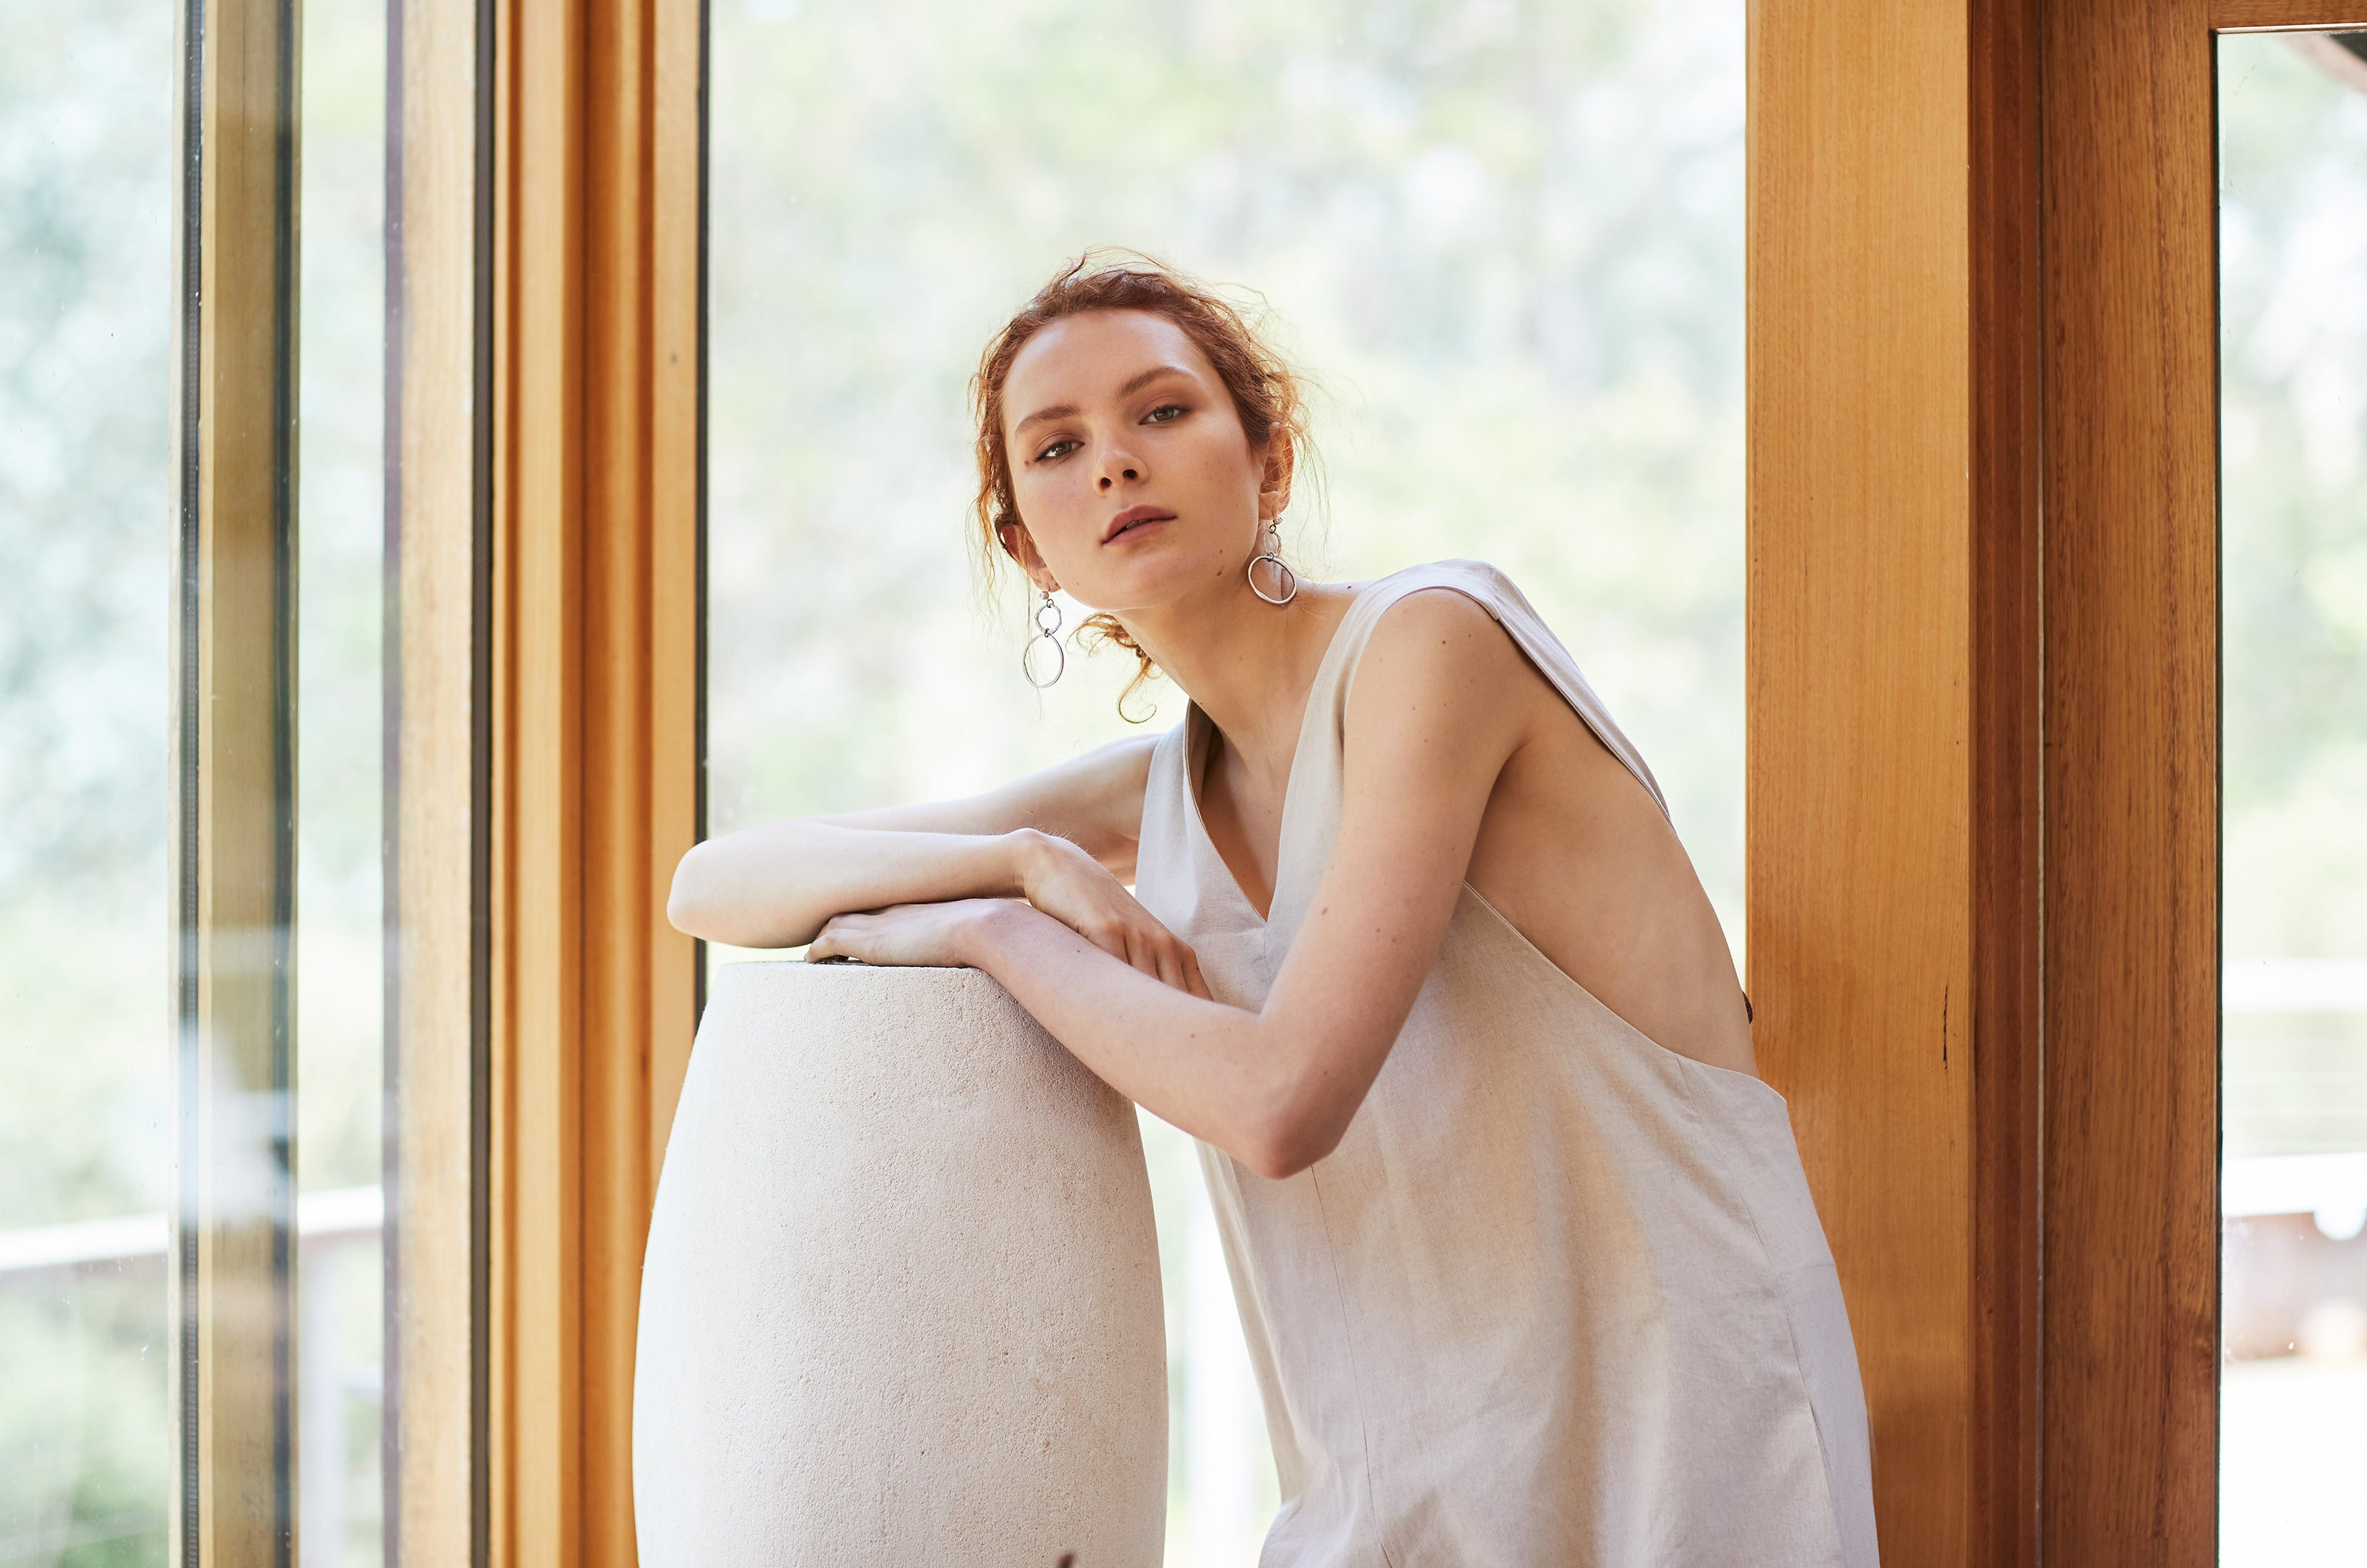 keegan AW19 Woodland Campaign Ethical Fashion Made in Melbourne Australia Cream Linen Jumpsuit Limestone Sculpture